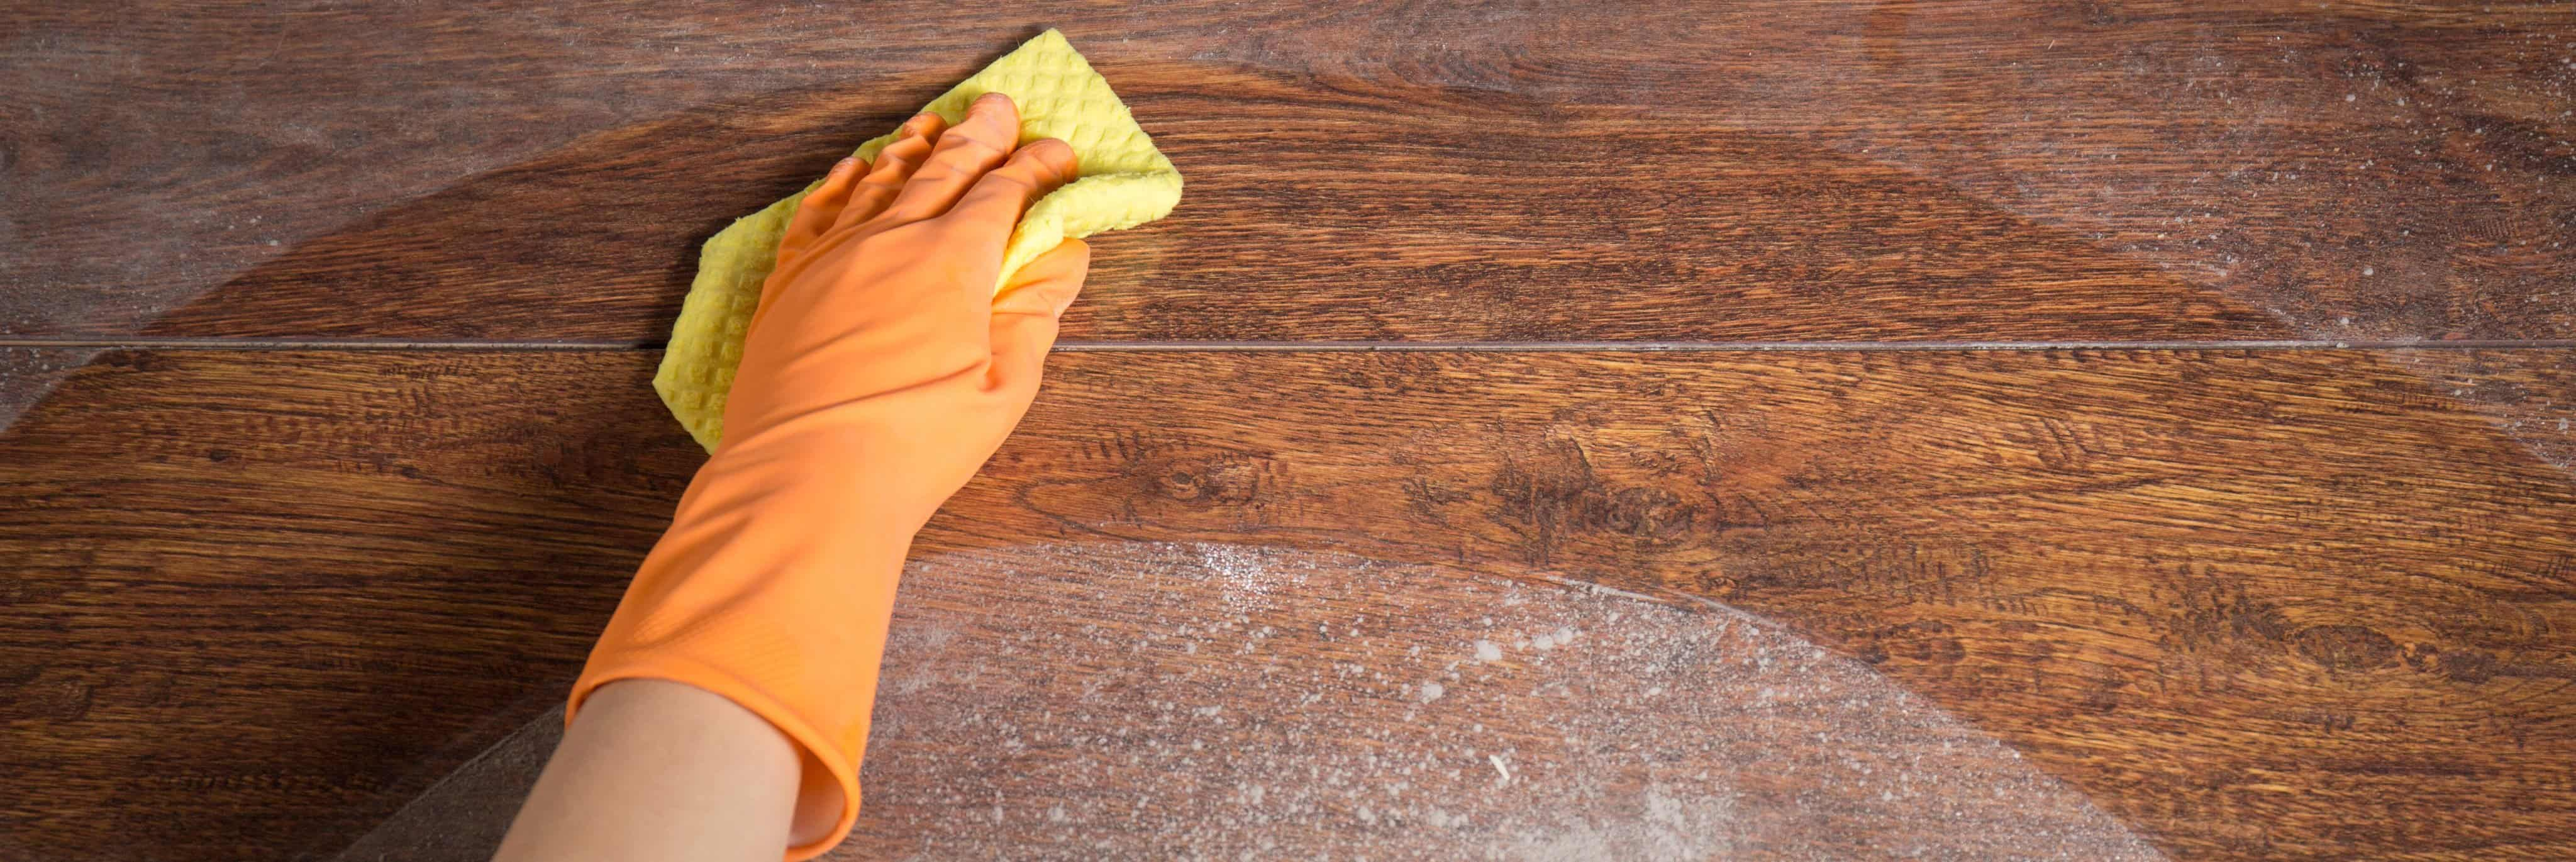 Hand wearing an orange cleaning glove using a yellow sponge to wipe away dust from a brown wooden surface